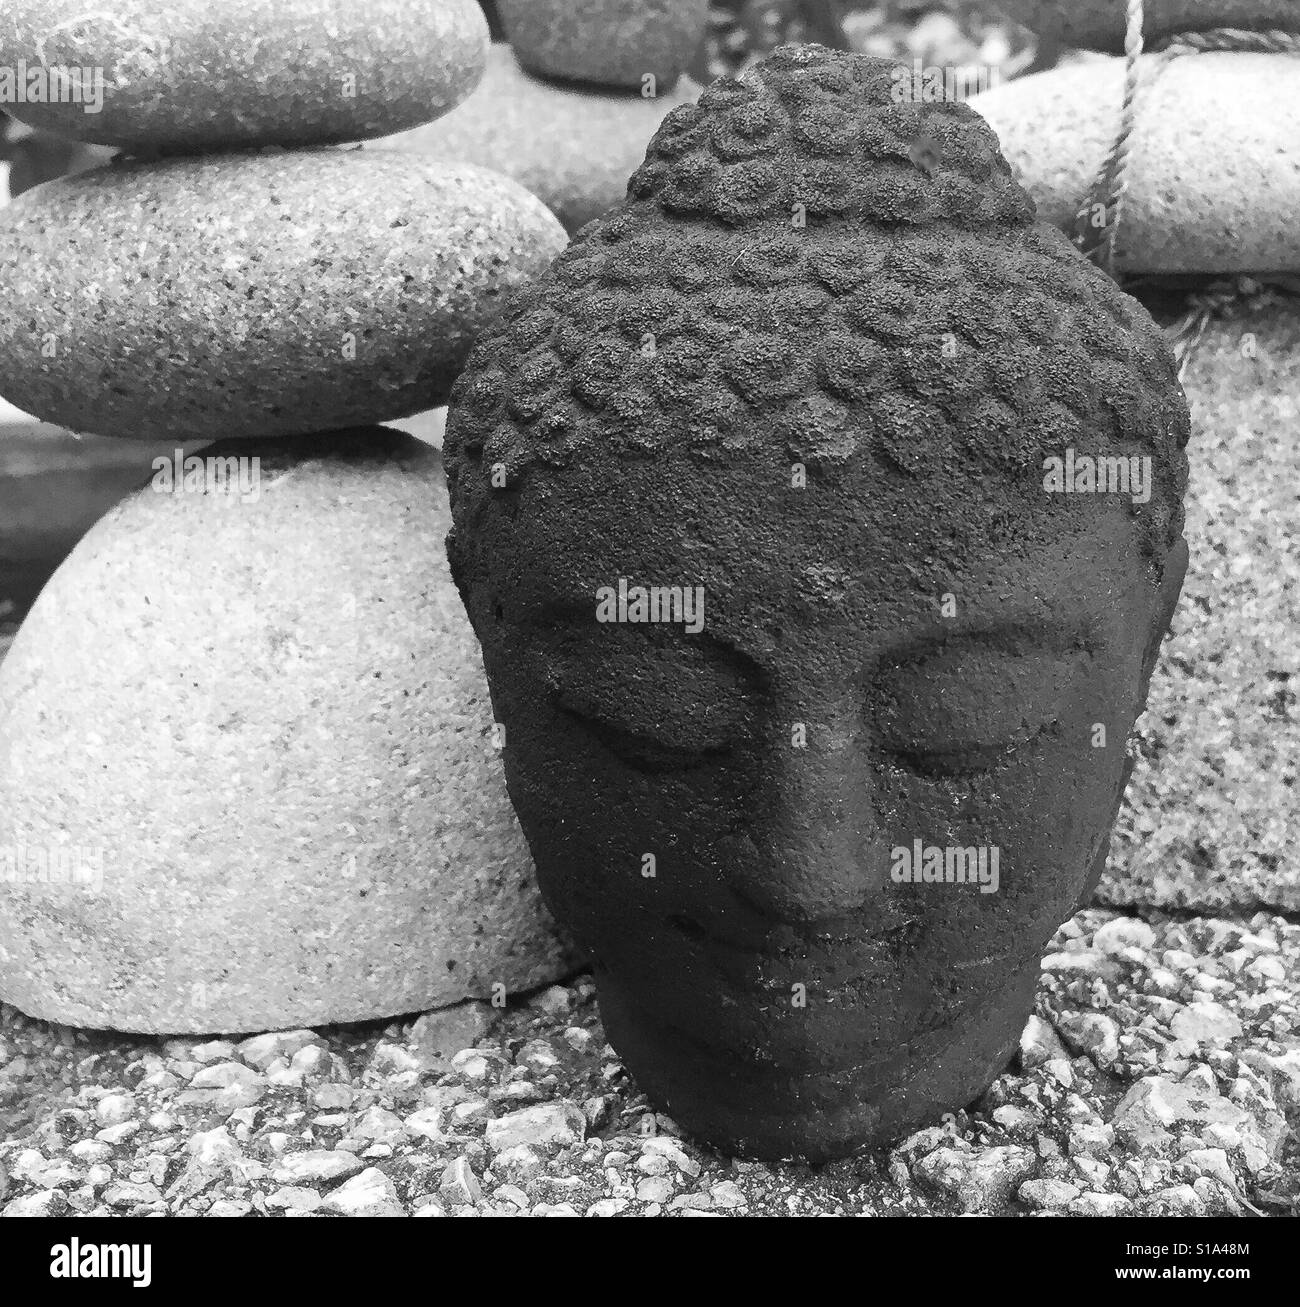 A Zen Moment In A Rock Garden With A Buddhist Statue Stock Photo Royalty Free Image 310624180